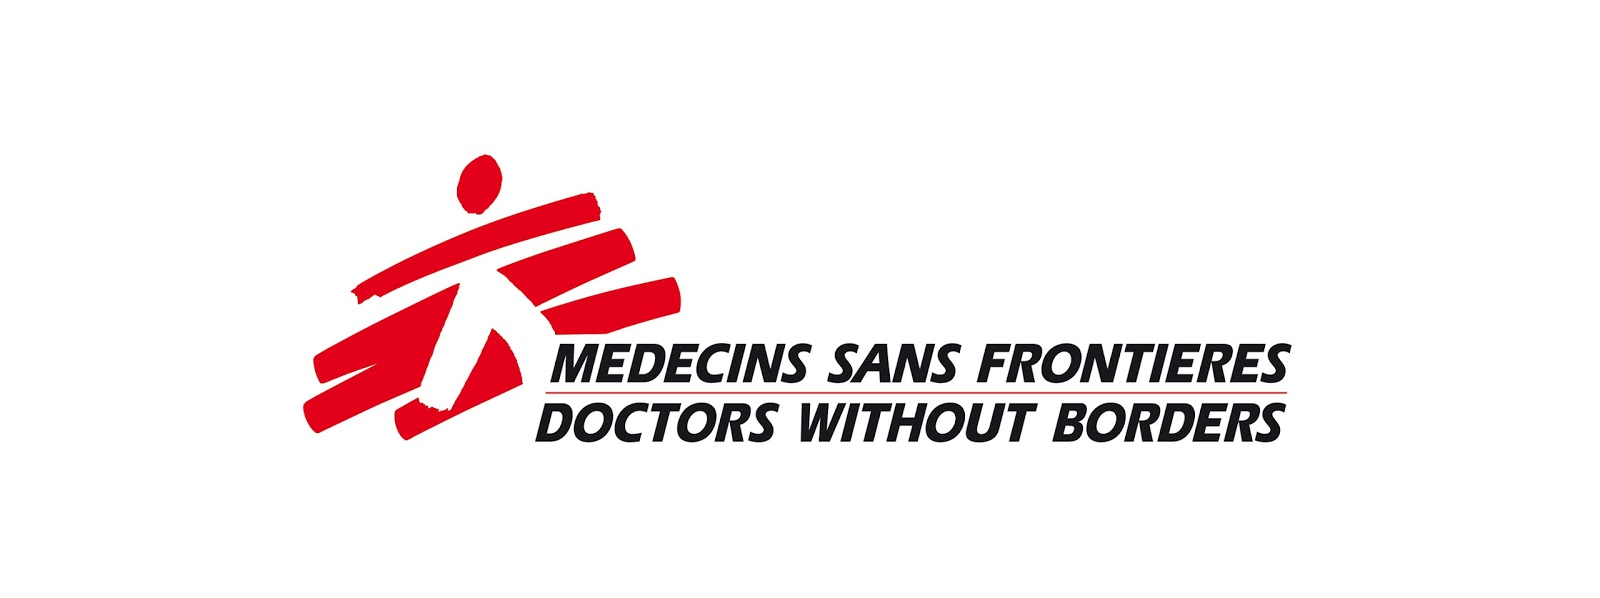 The International Medical Humanitarian Organization Doctors Without Borders Medecins Sans Frontieres MSF Will Soon Launch A Public Campaign And